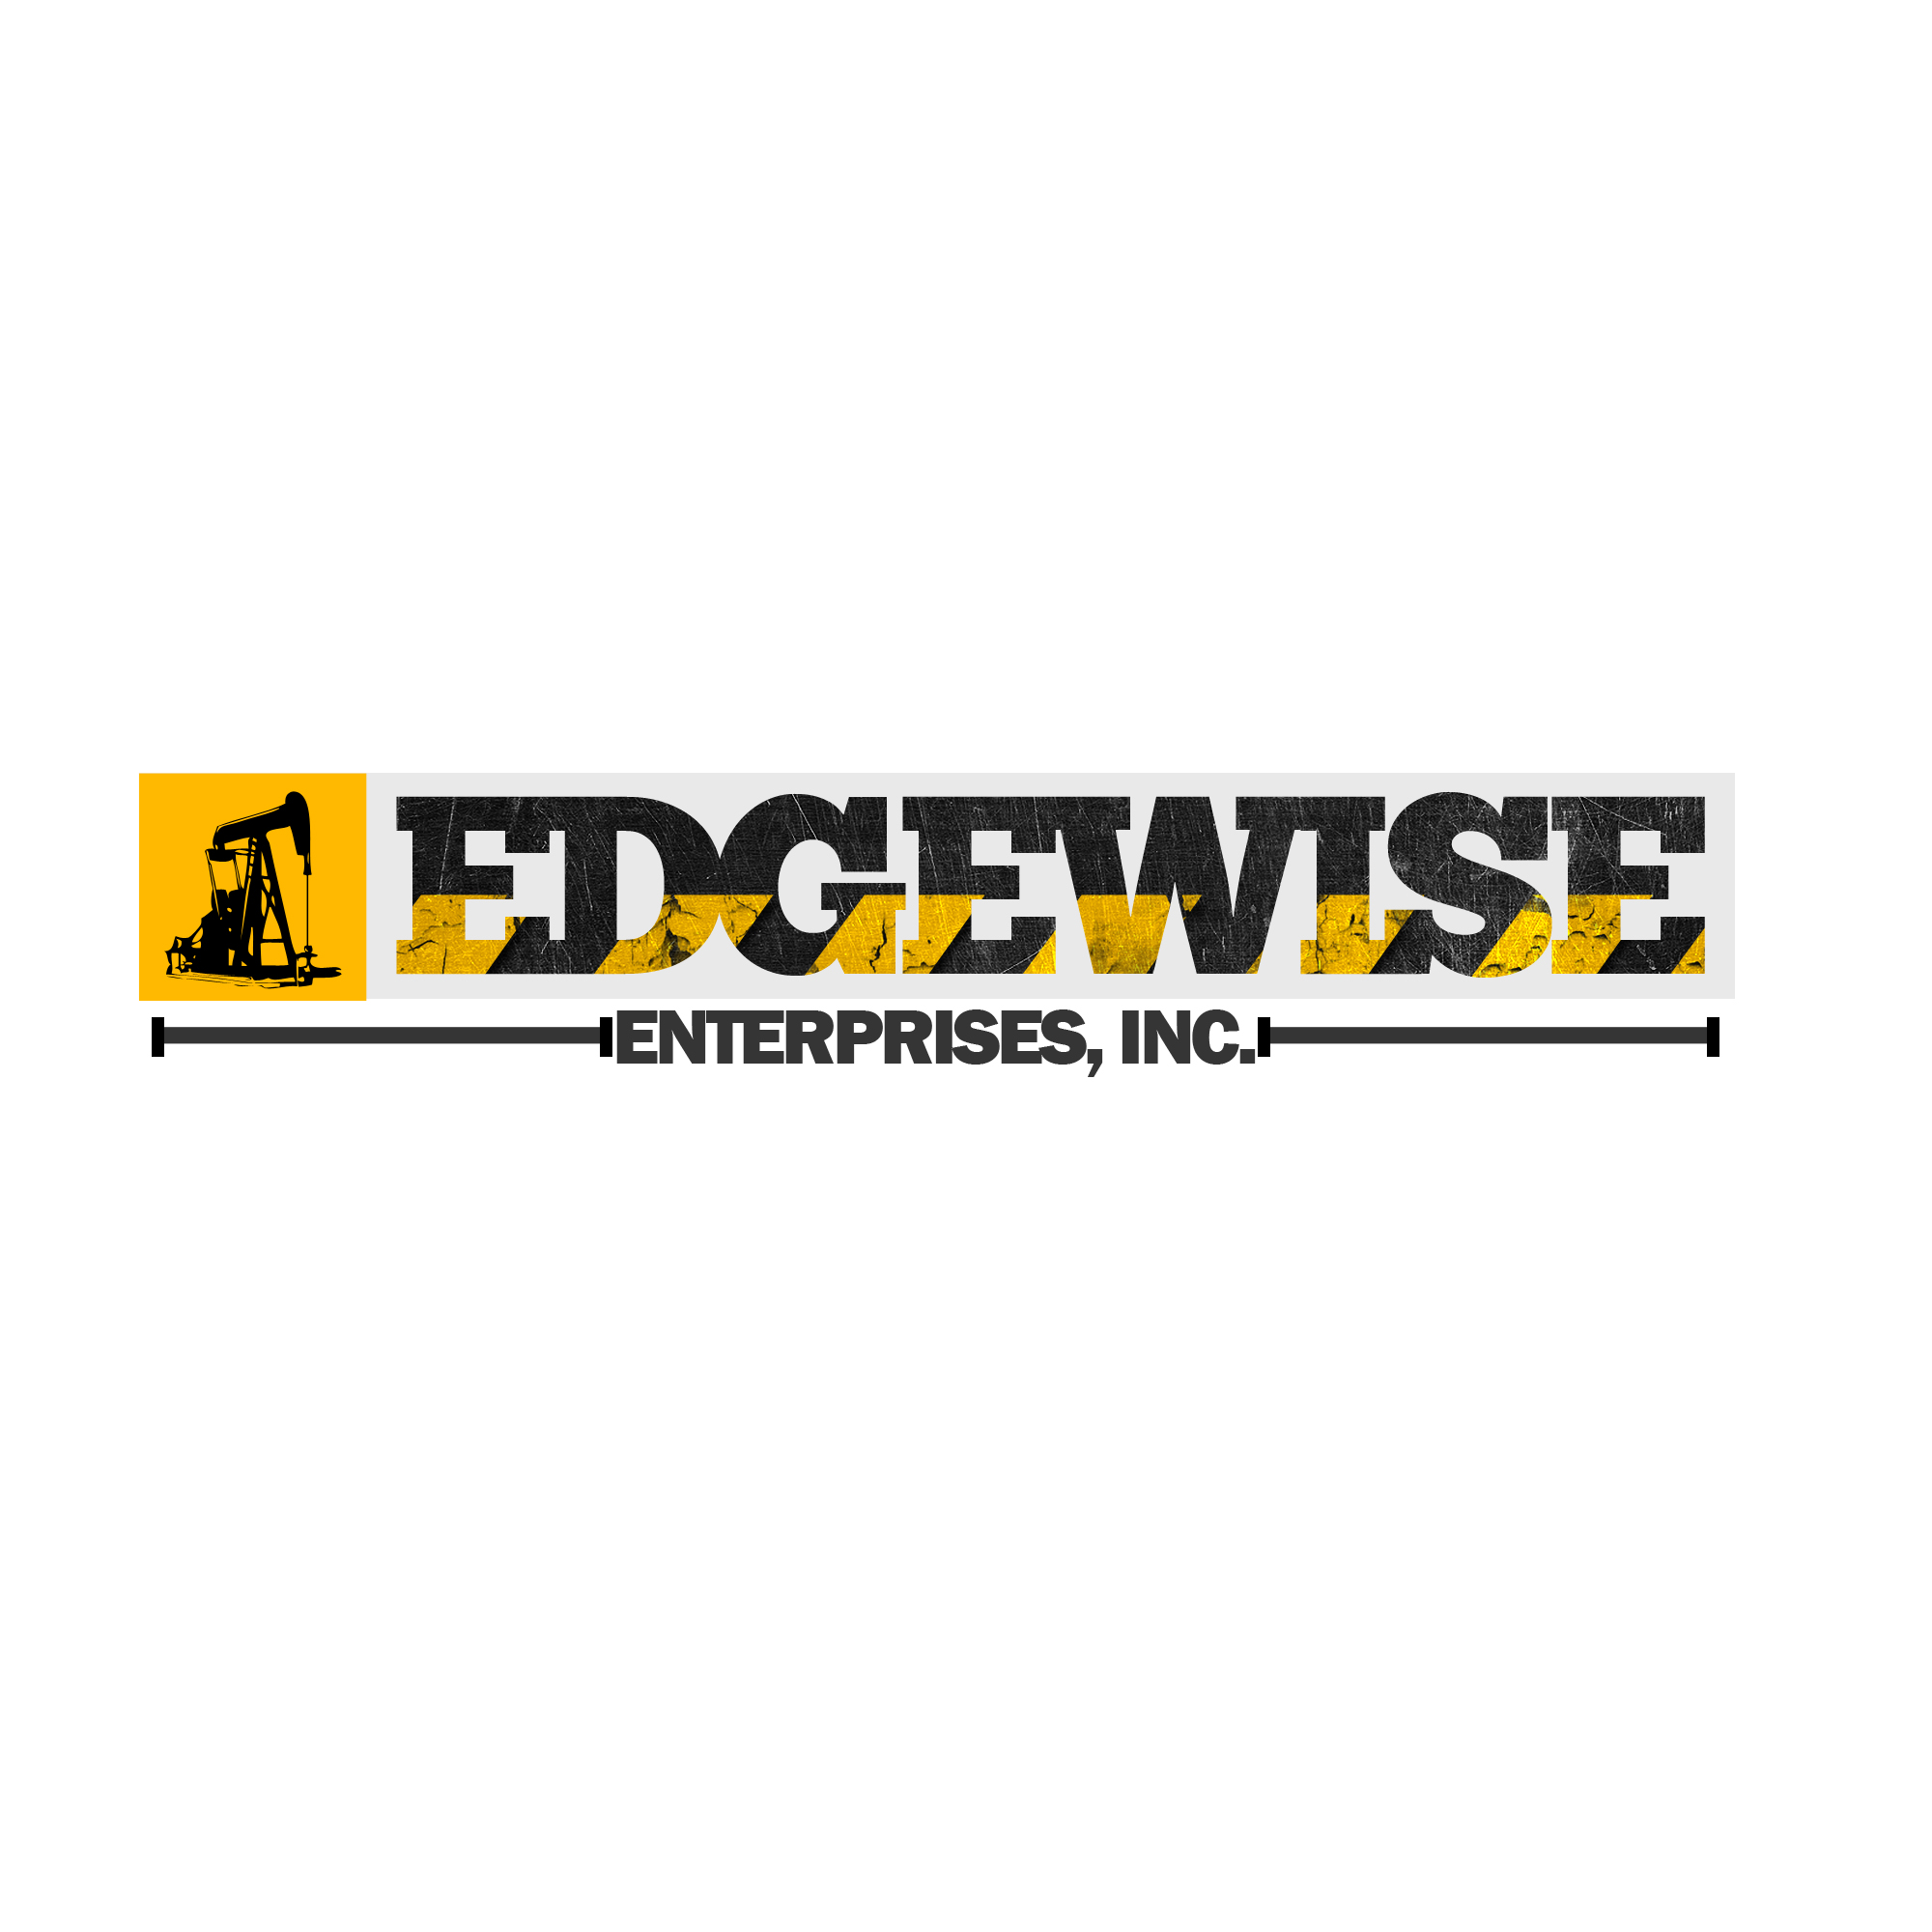 Logo Design by Kenneth Joel - Entry No. 49 in the Logo Design Contest New Logo Design for Edgewise Enterprises Inc..